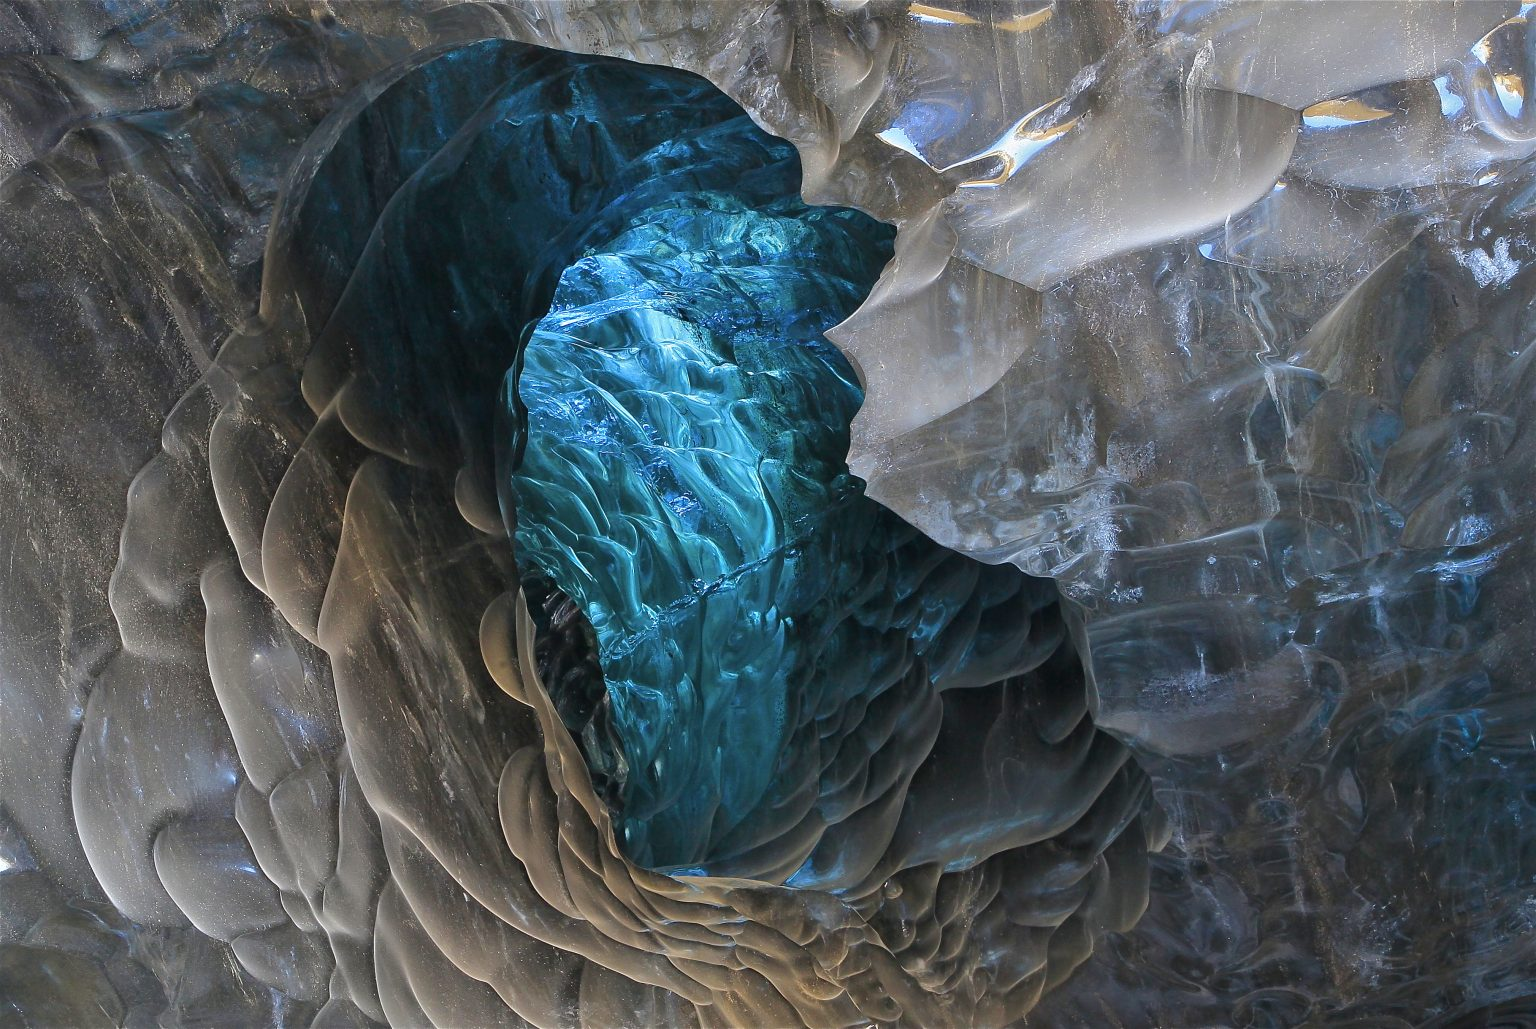 Ice Cave tour Blue Iceland - ice formation